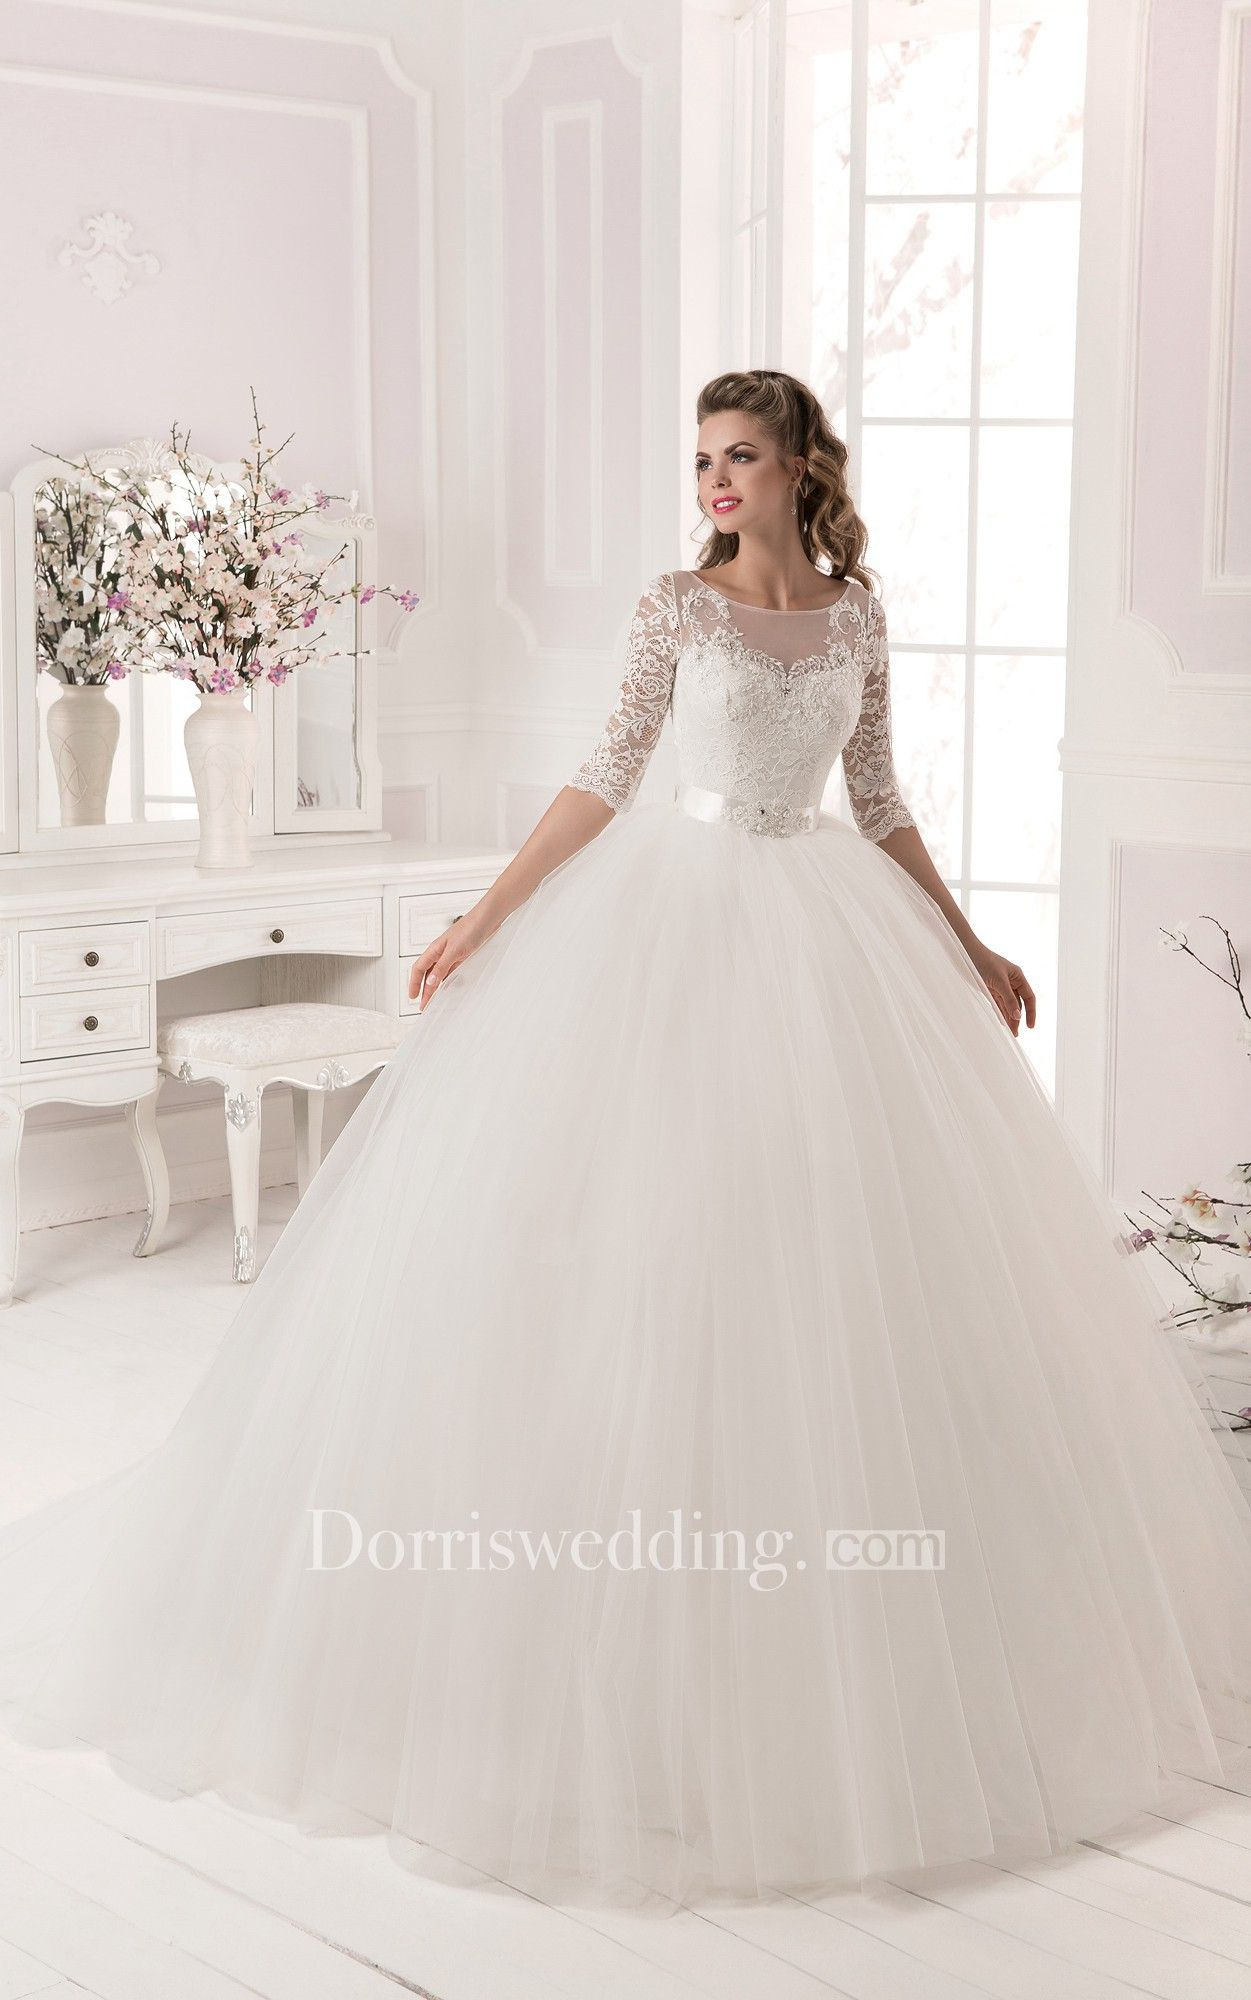 Long sleeve ball gown wedding dresses  Ball Gown LaceuTulle Long Sleeve Dress with Crystal Detailing  Ball